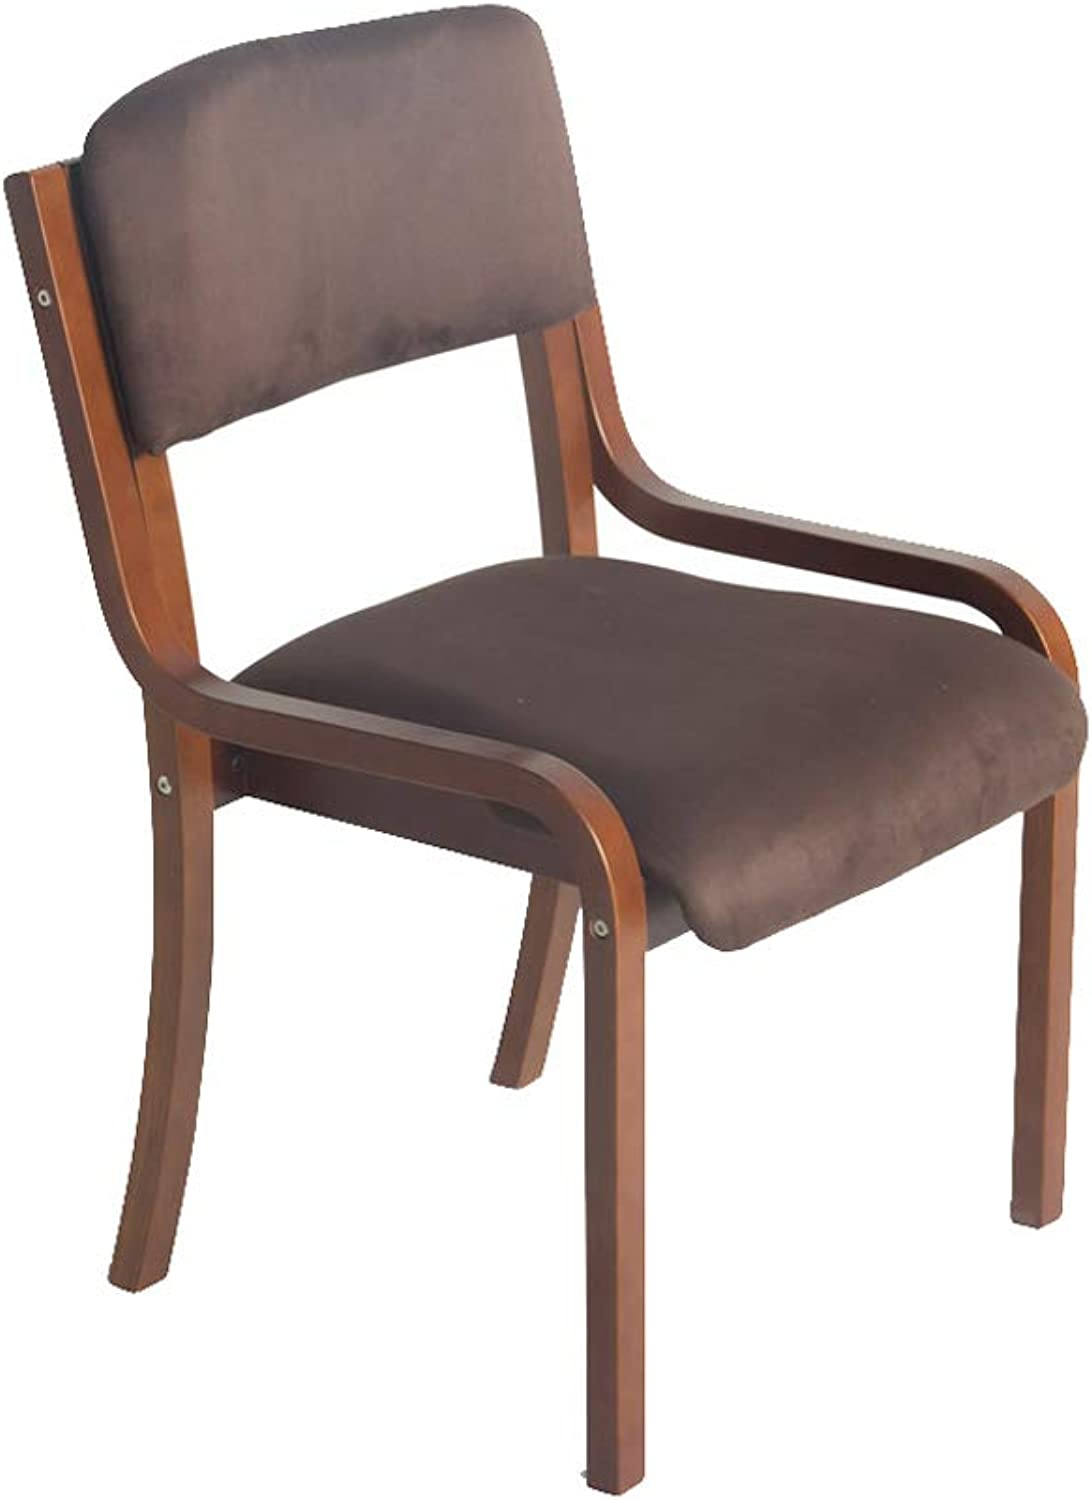 Ailj Chair, Simple Desk Chair Creative Computer Chair Home Chair Dining Chair 53  58  83cm (2 colors) (color   Brown)